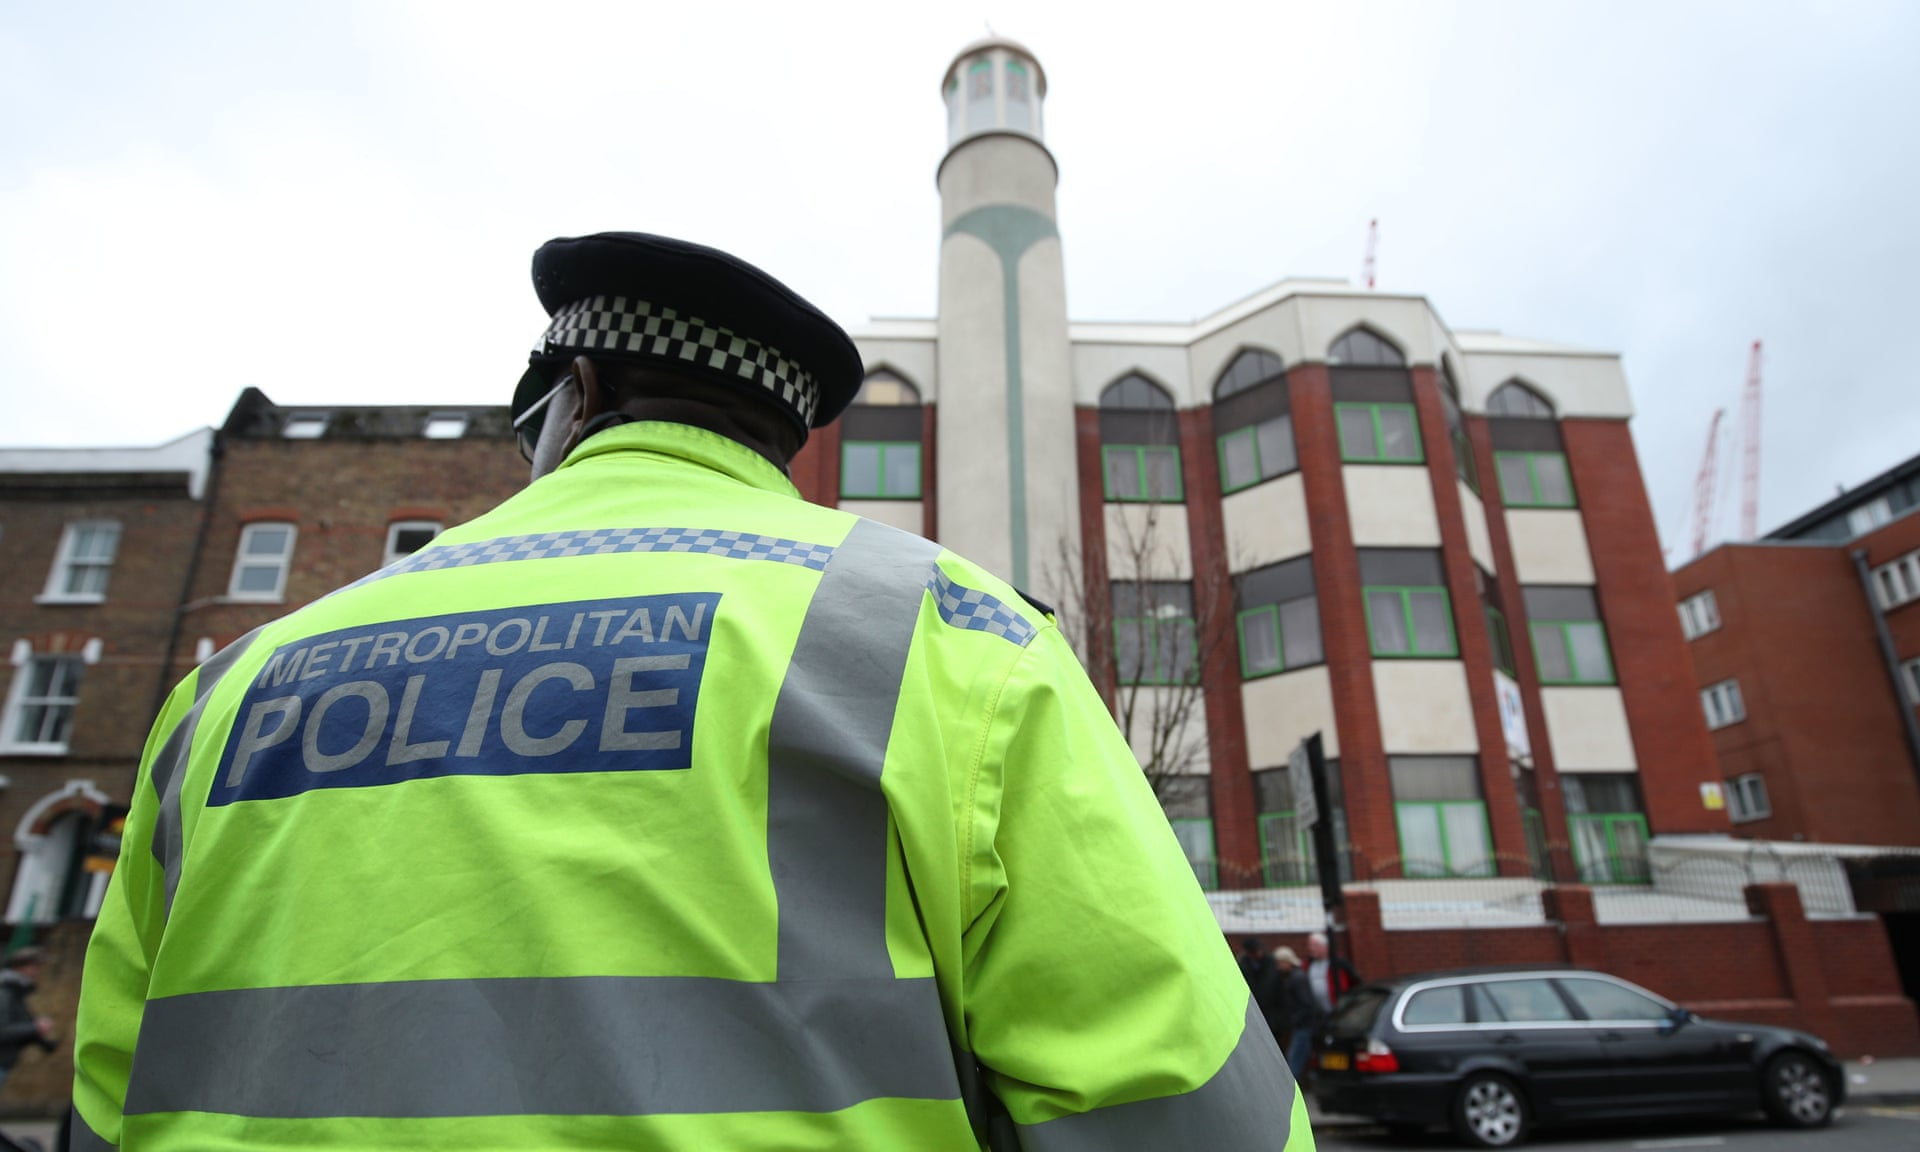 Just 22 mosques given funding for hate crime security last year